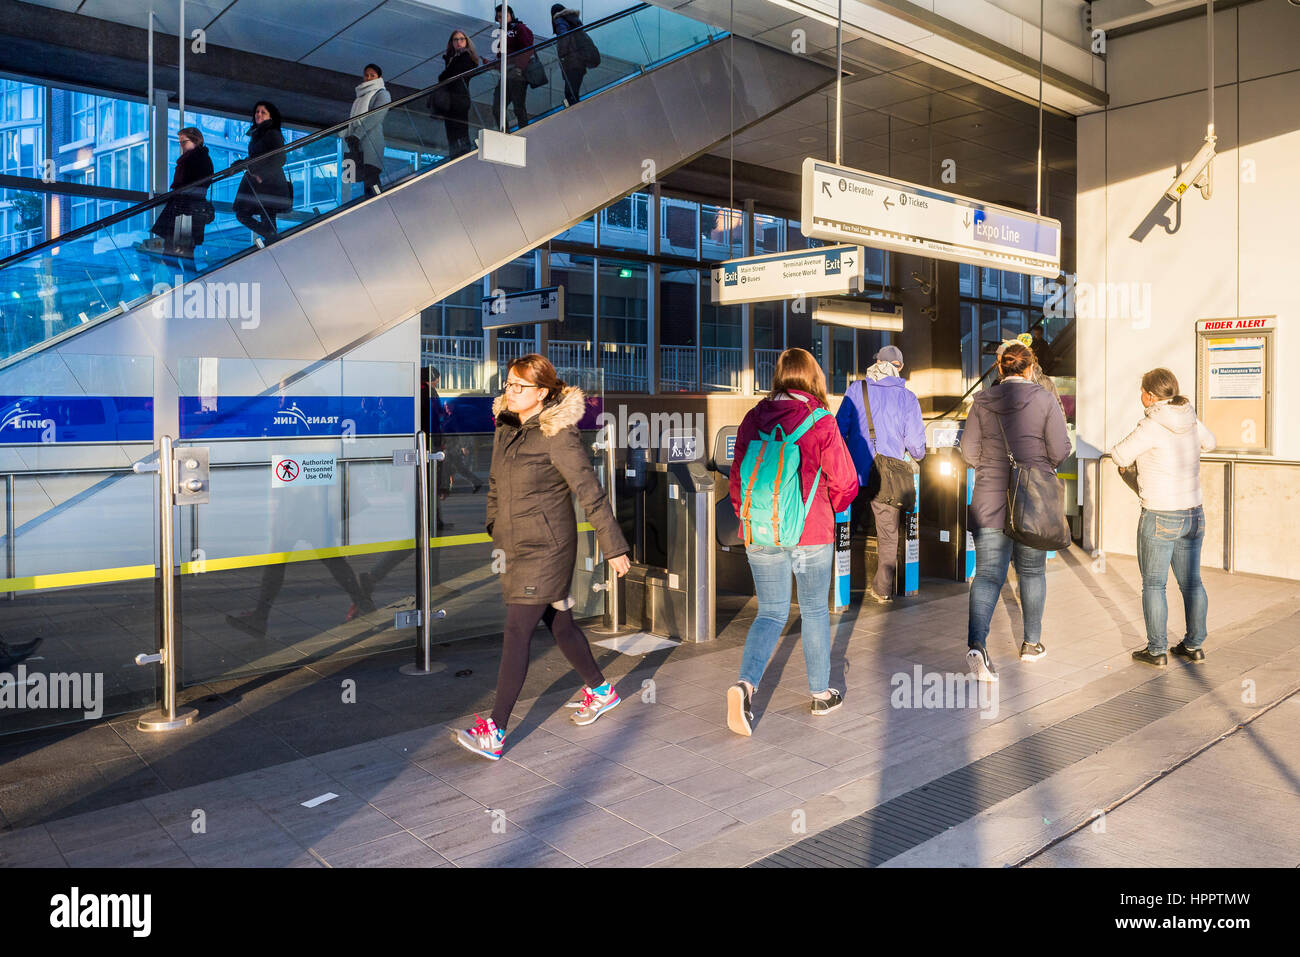 Commuters at Main Street Skytrain Station, Vancouver, British Columbia, Canada. Stock Photo